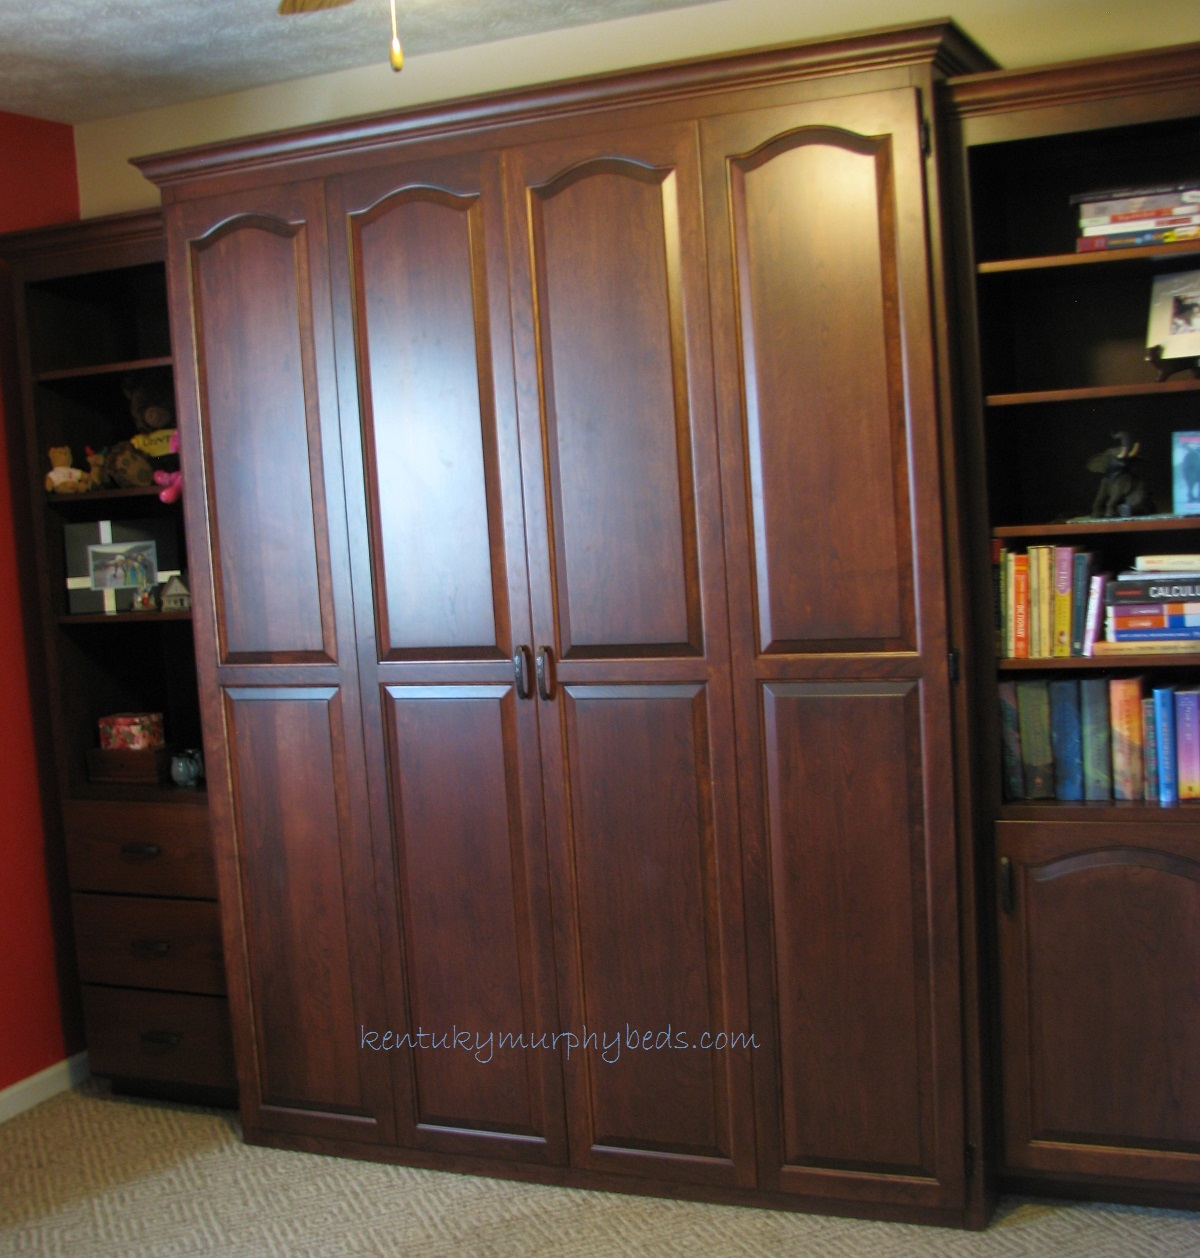 Cherry raised cathedral arch queen size Murphy bed with two accessory cabinets